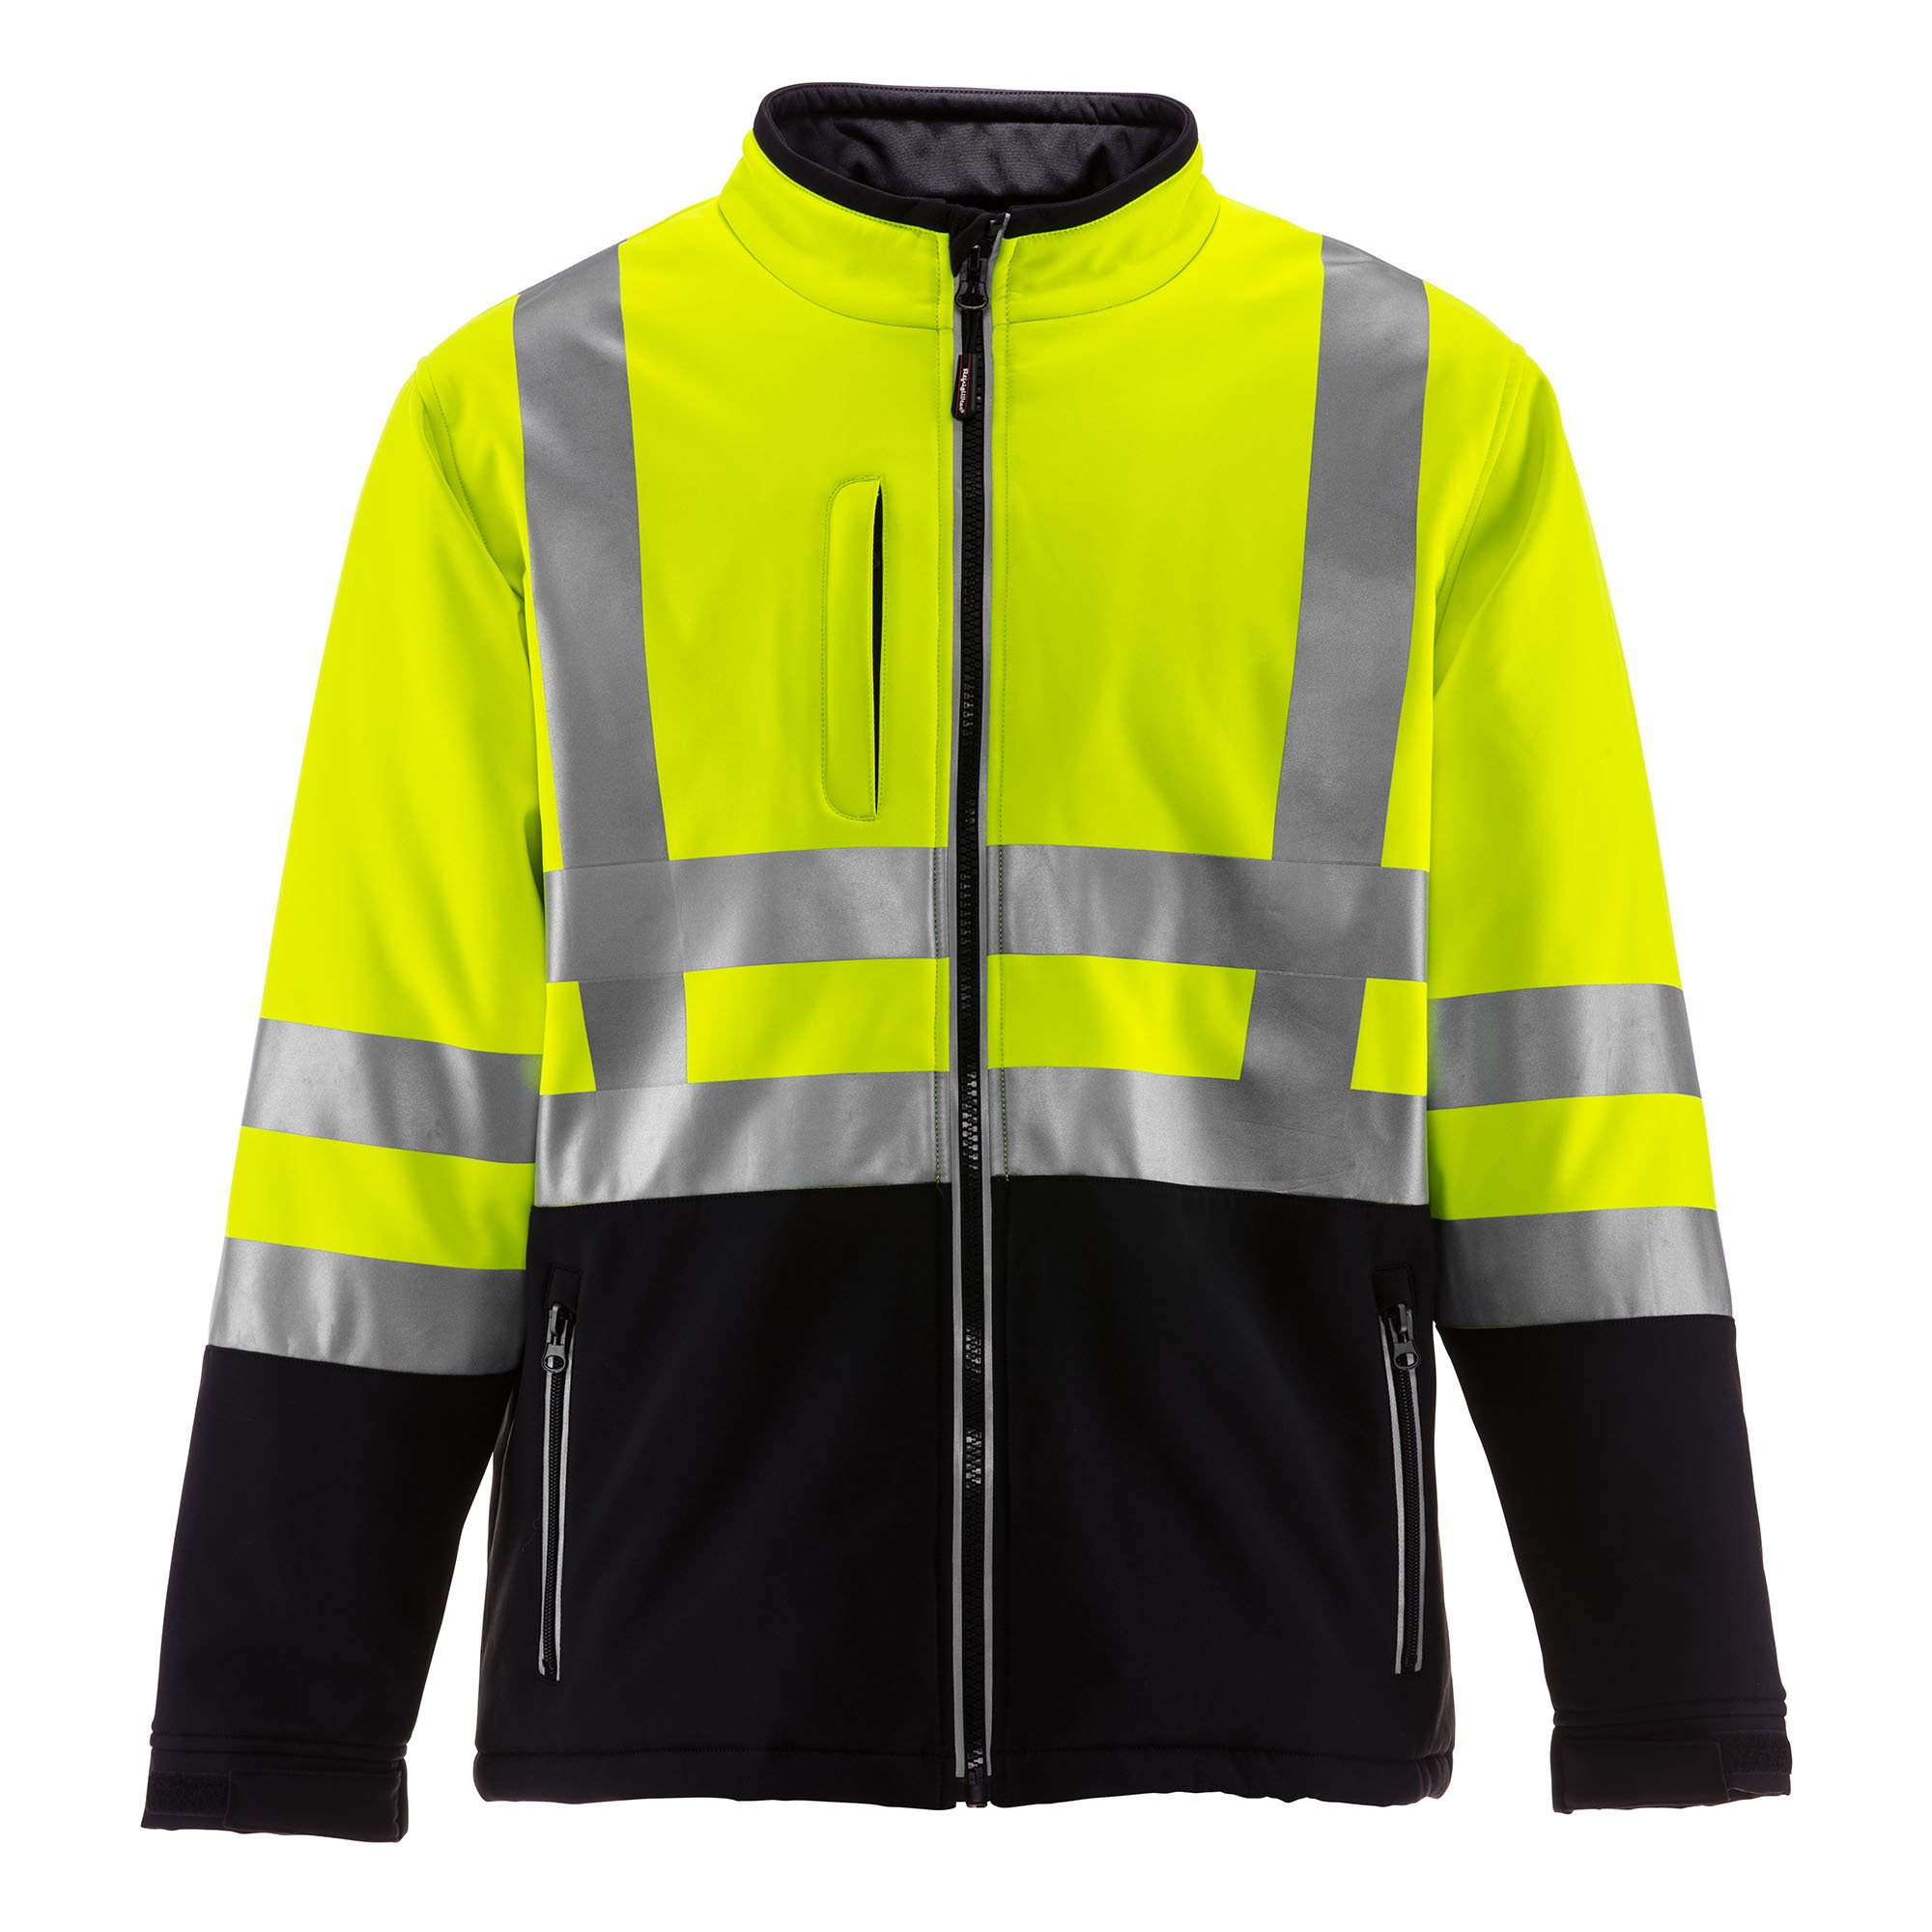 RefrigiWear Men's HiVis Insulated Softshell Jacket - ANSI Class 2 High Visibility with Reflective Tape (Black/Lime, XL) by Refrigiwear